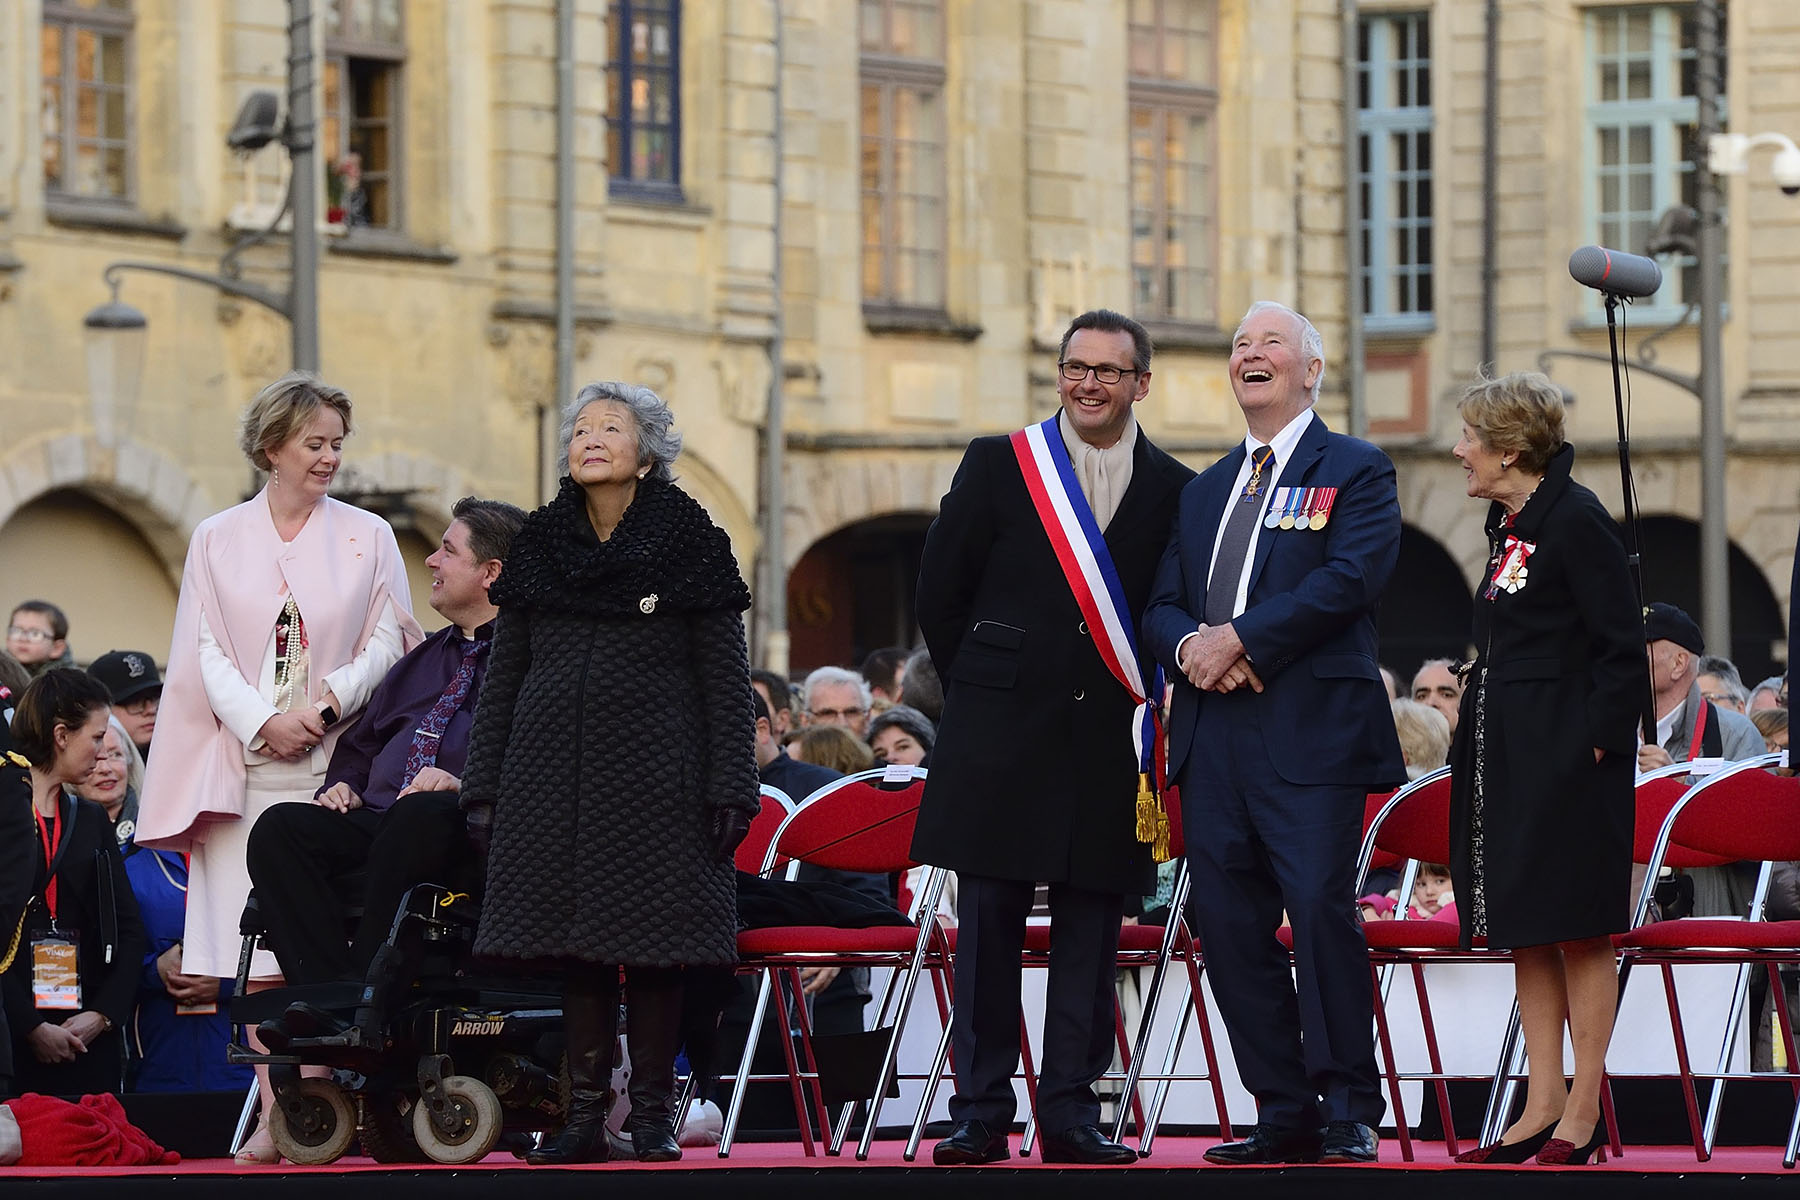 In the evening, Their Excellencies attended a military concert given by Canadian and French Armed Forces, in Arras.